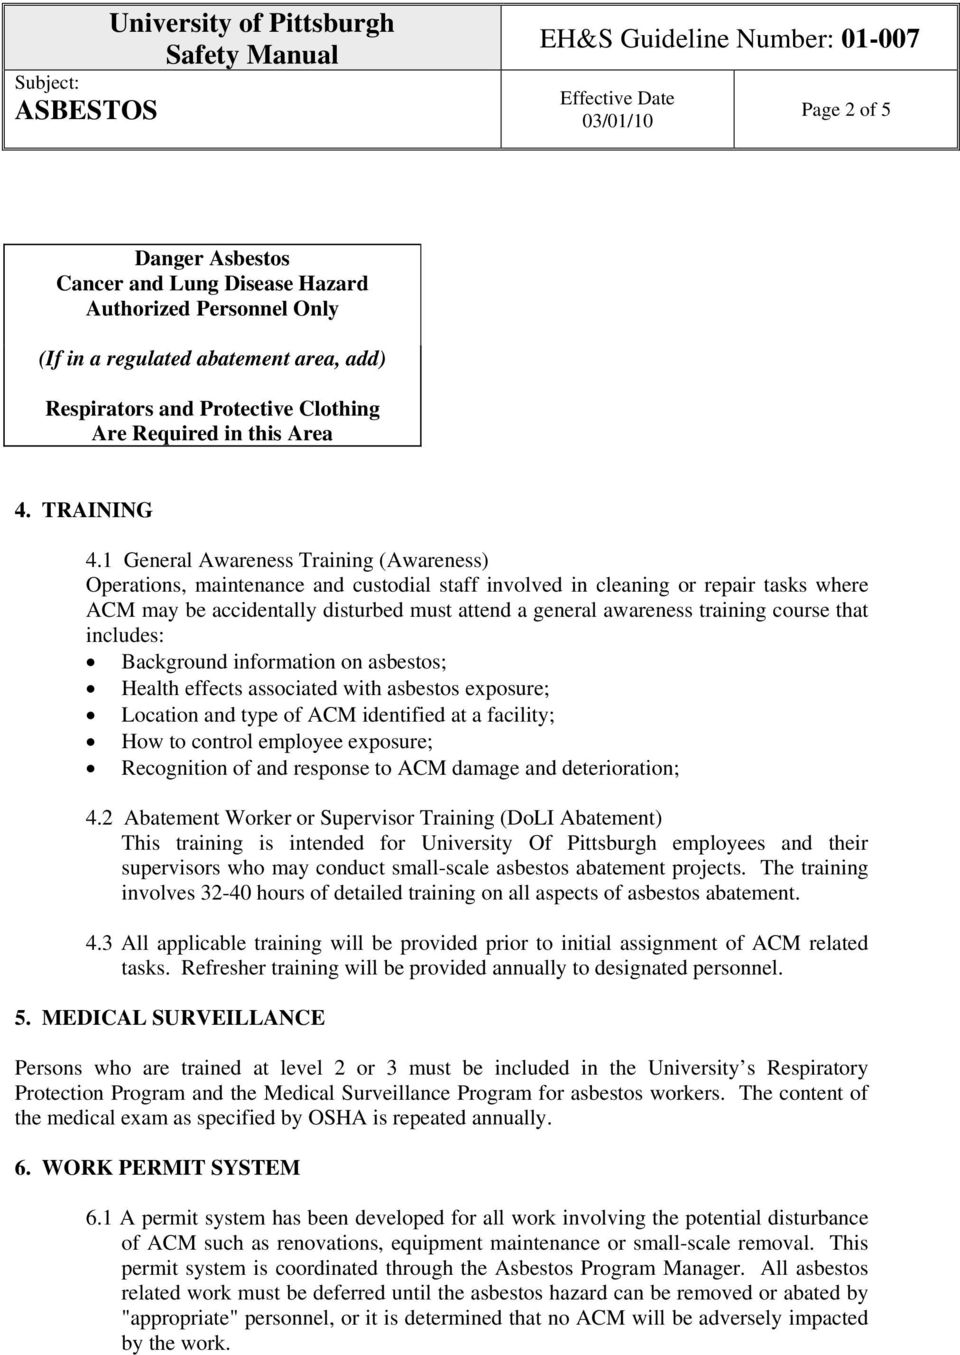 1 General Awareness Training (Awareness) Operations, maintenance and custodial staff involved in cleaning or repair tasks where ACM may be accidentally disturbed must attend a general awareness